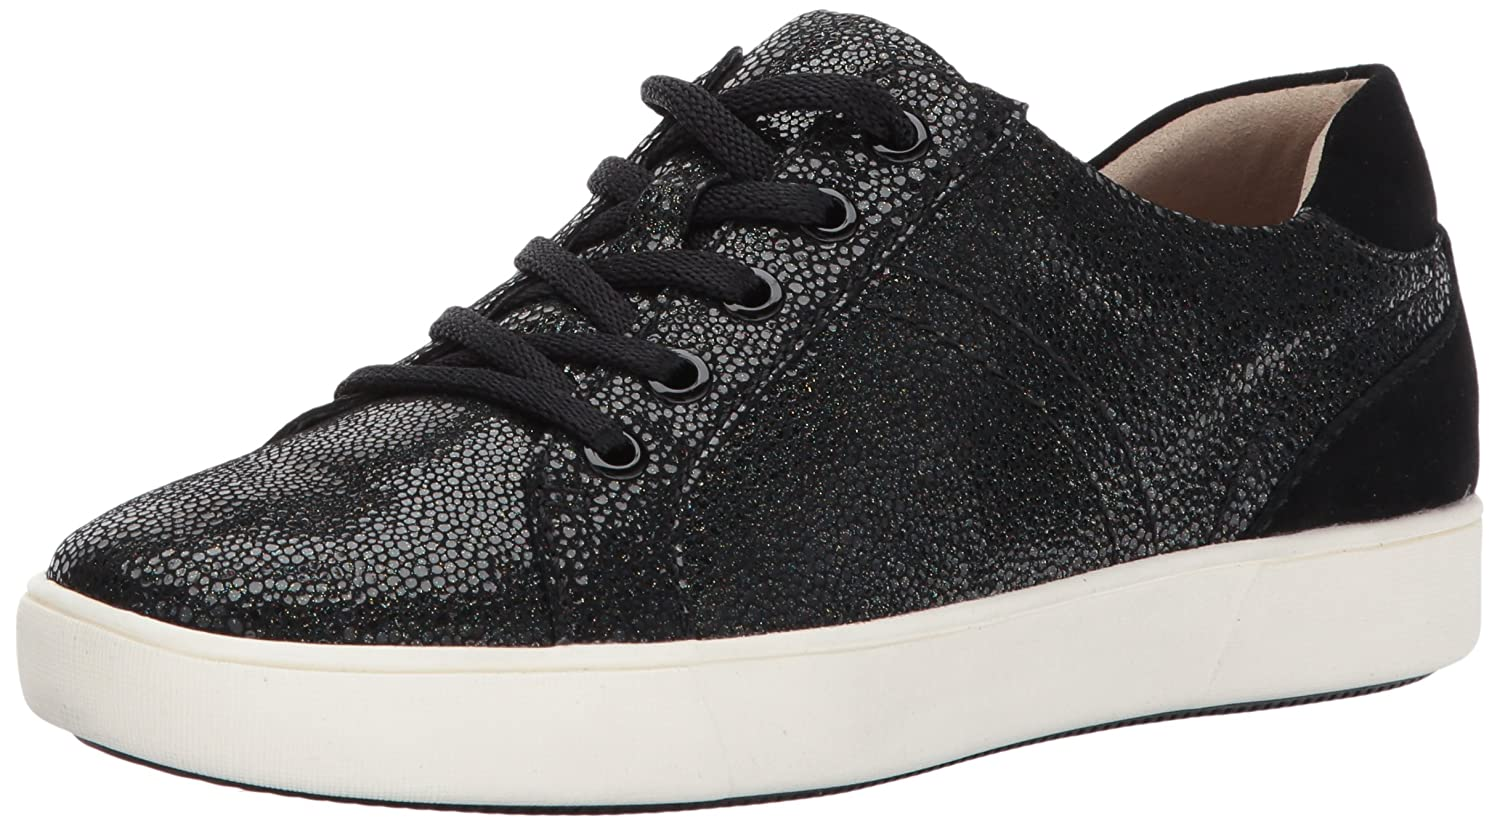 Naturalizer Women's Morrison Fashion Sneaker B071ZDJFML 8.5 2W US|Black/Black